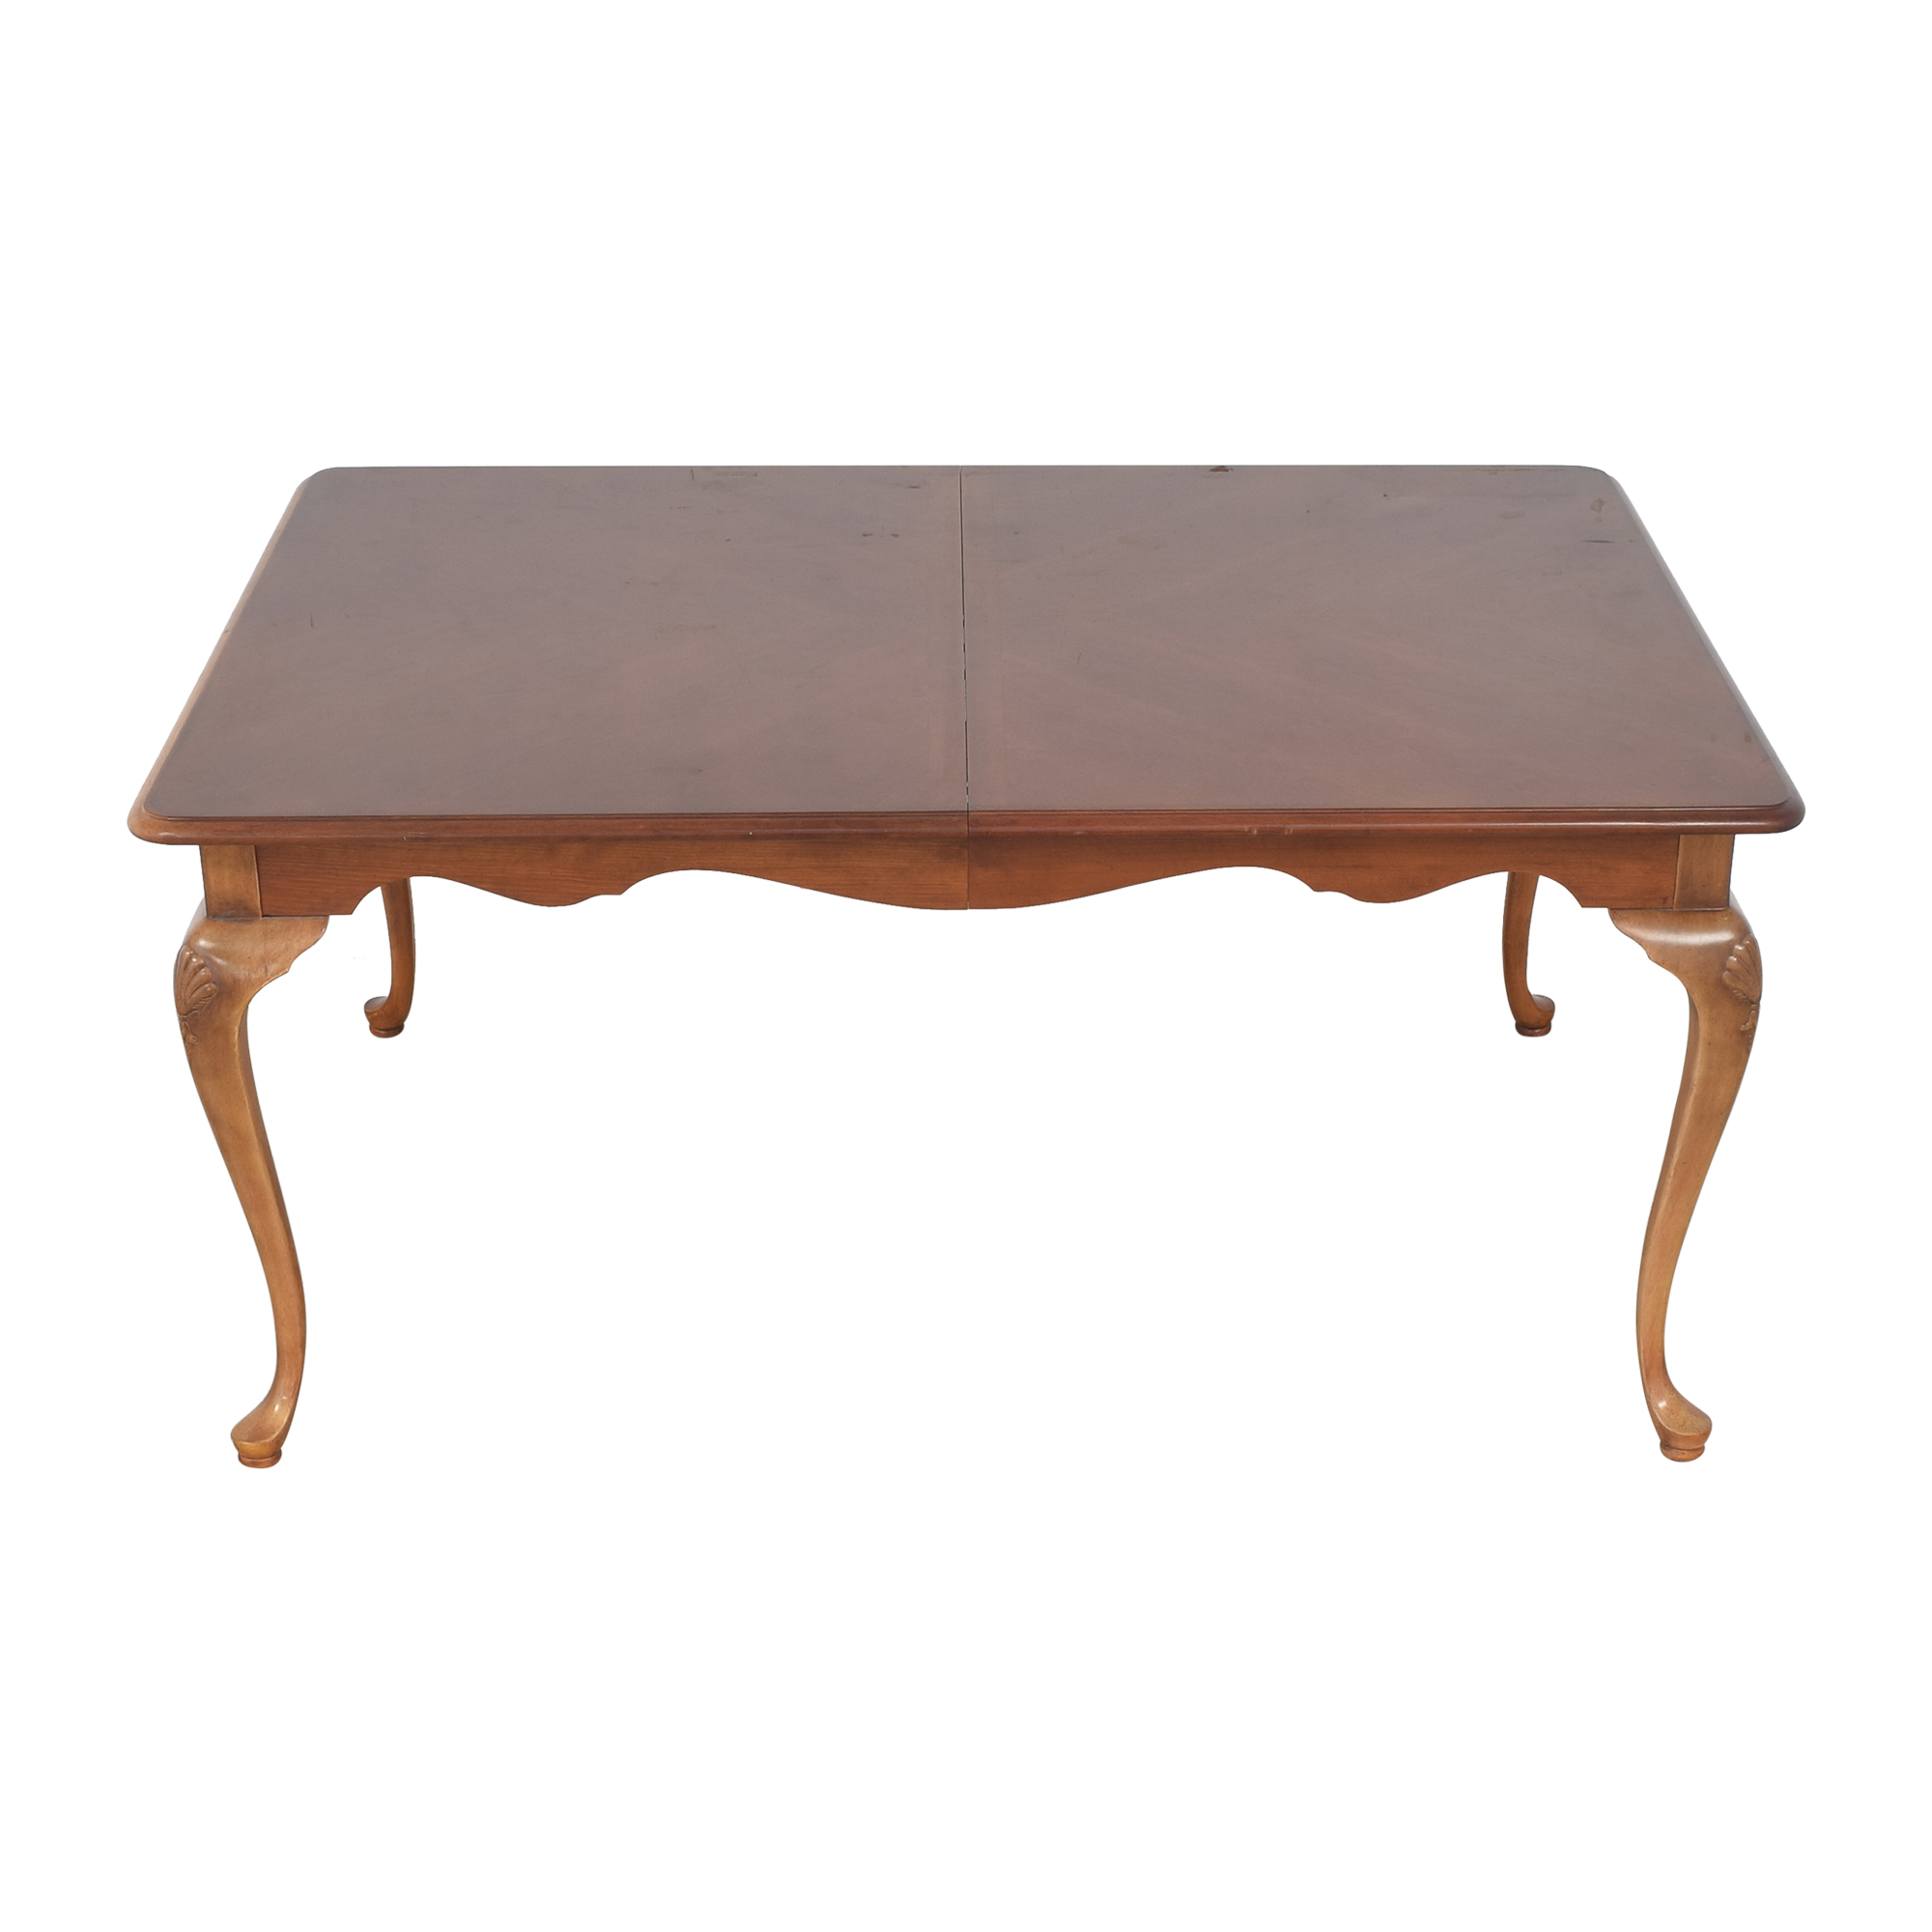 Broyhill Furniture Broyhill Premier Dining Table pa